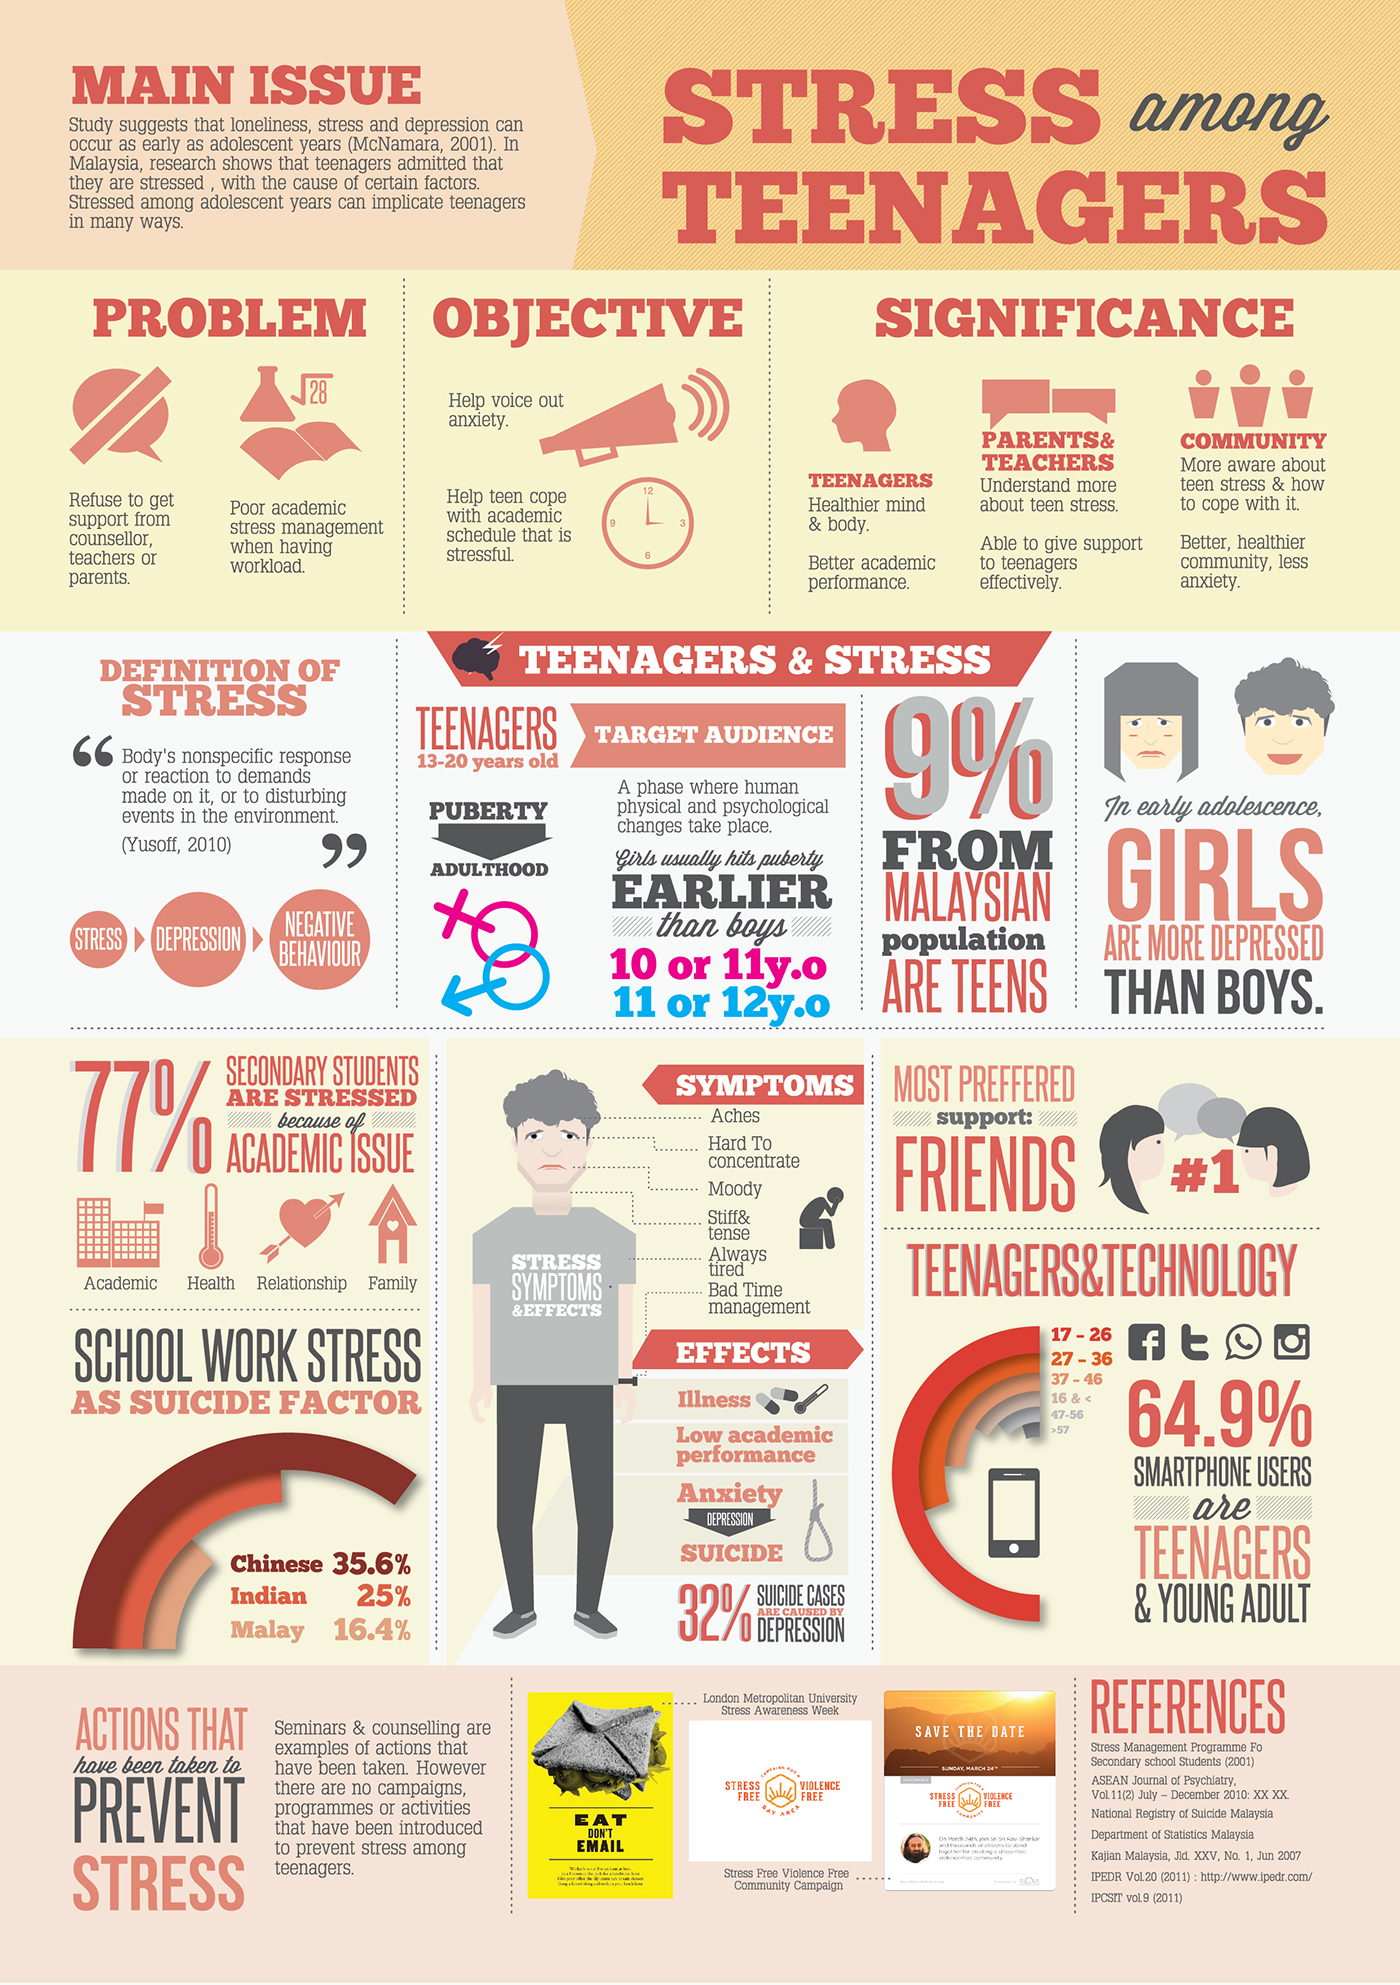 the causes and effects of stress among teenagers today In today s society, adolescents are faced with stress unlike any other generation before (elkind, 1984) elkind (1984) is quoted as saying that contemporary american society has struck teenagers a double blow the symptoms and causes of stress in adolescence are discussed as well as coping strategies the effects of 12 prevalence of stress in adolescence it is important to note that today.